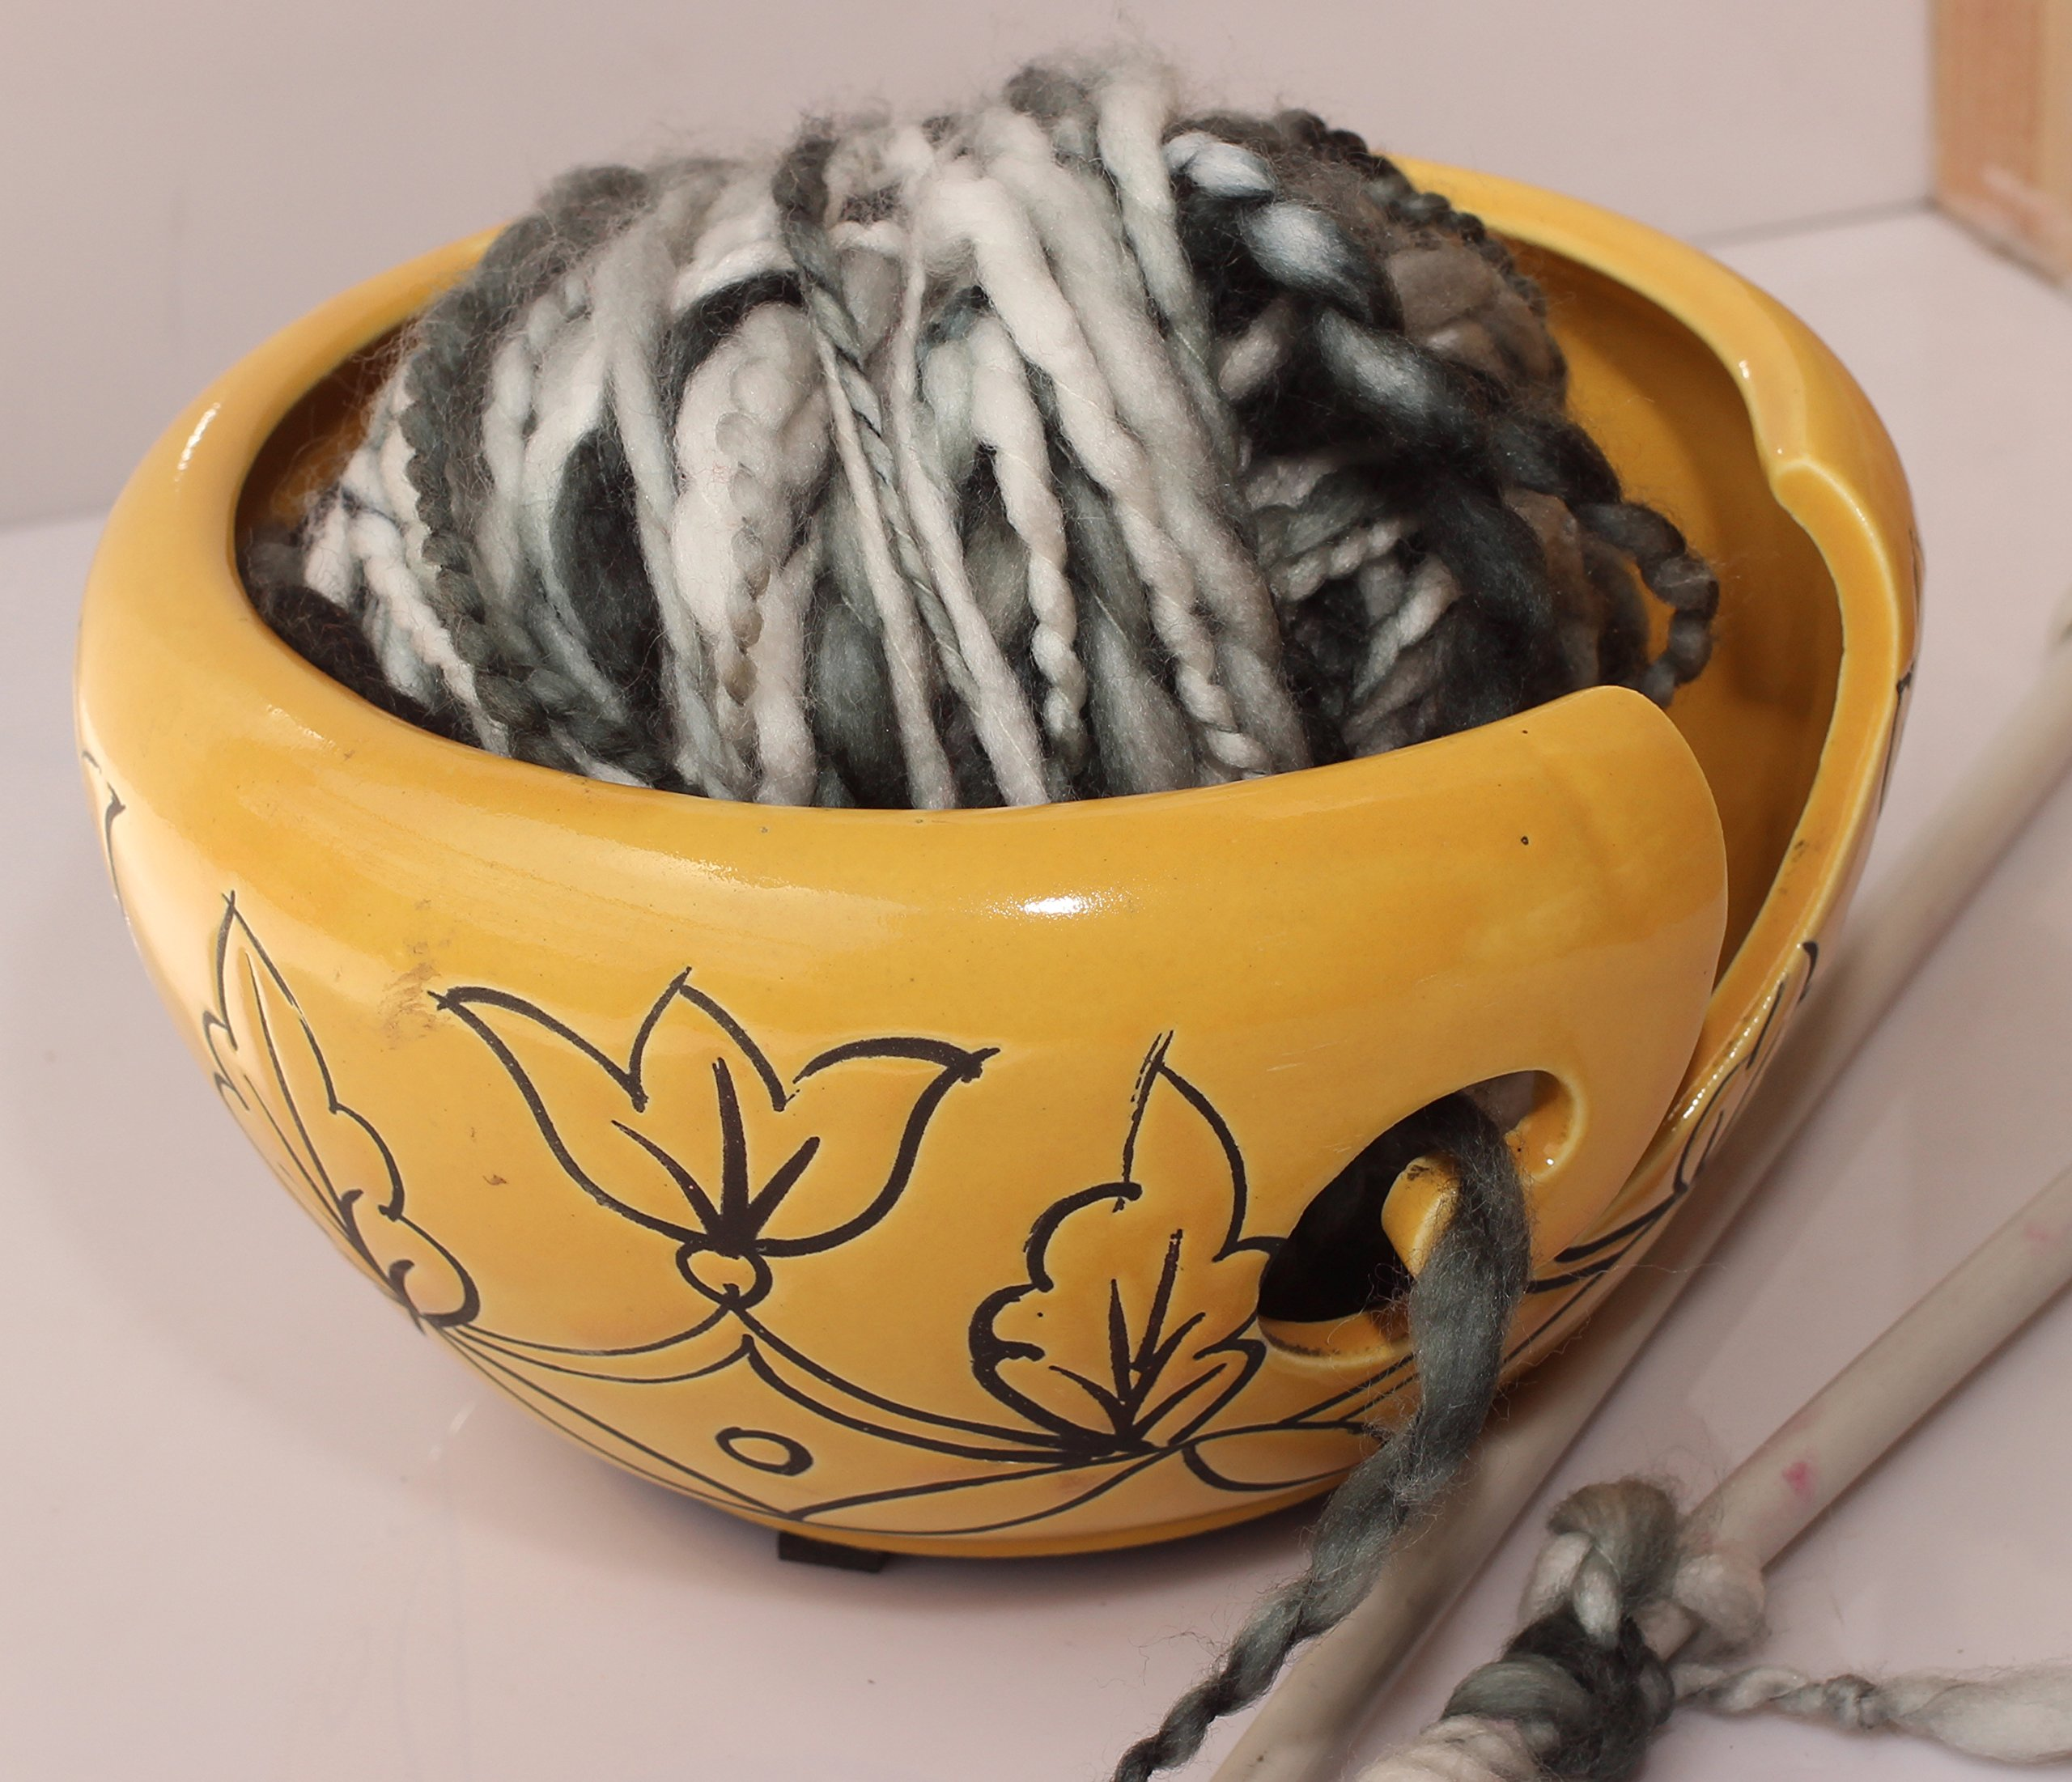 2018 - 6'' Ceramic Knitting Yarn Bowl - Knitting Bowl With Holes Storage - Crochet Yarn Holder Bowl - Perfect For Men, Women and Seniors